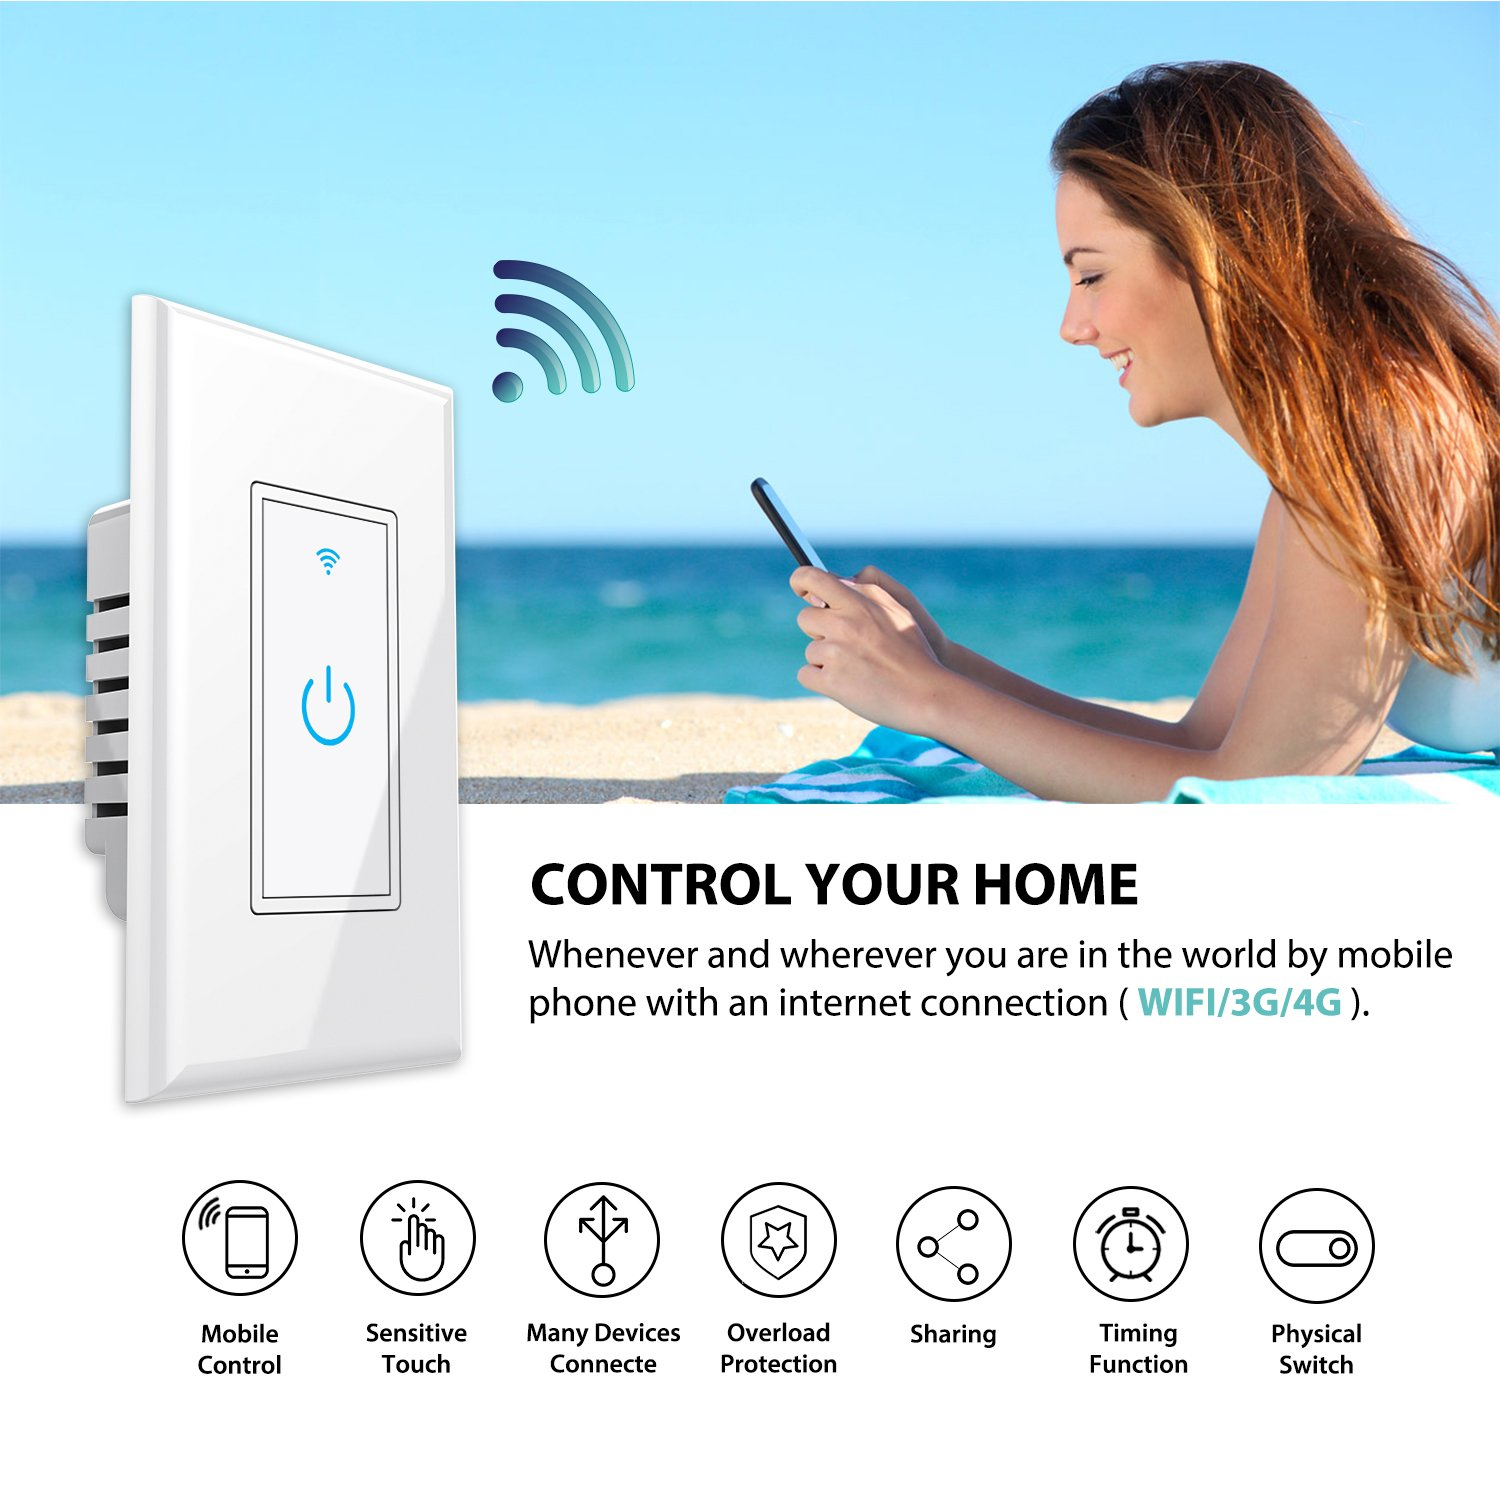 WiFi Smart Light Switch In-Wall,Phone Remote Control Wireless Switch No Hub Required,Timing Function, Automatic Control Your Fixtures From Anywhere,Compatible with Amazon Alexa,Overload Protection 15A by NewRice (Image #2)